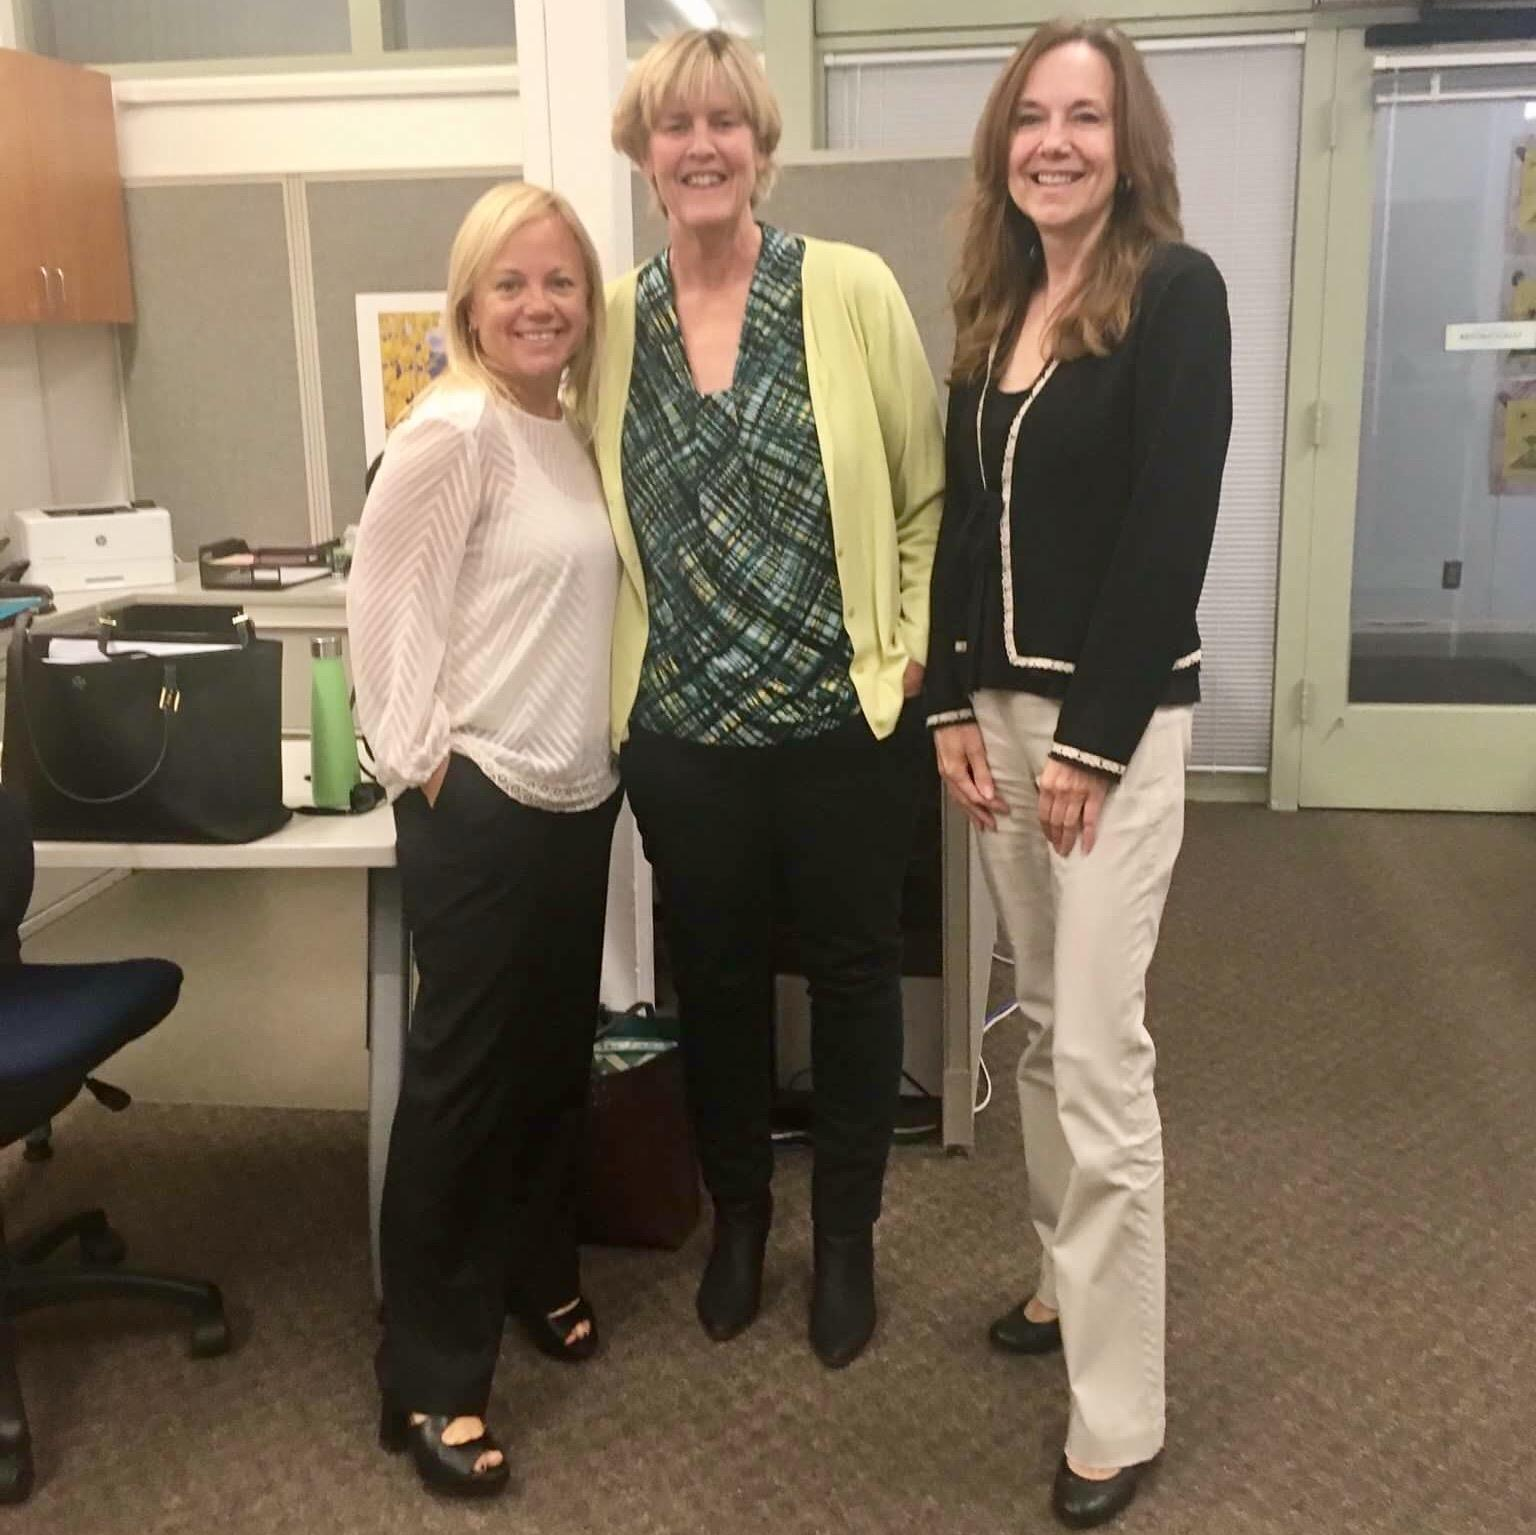 Hendricks works closely with many educators in the district, including Paly principal Kim Diorio and Gunn principal Kathie Laurence.